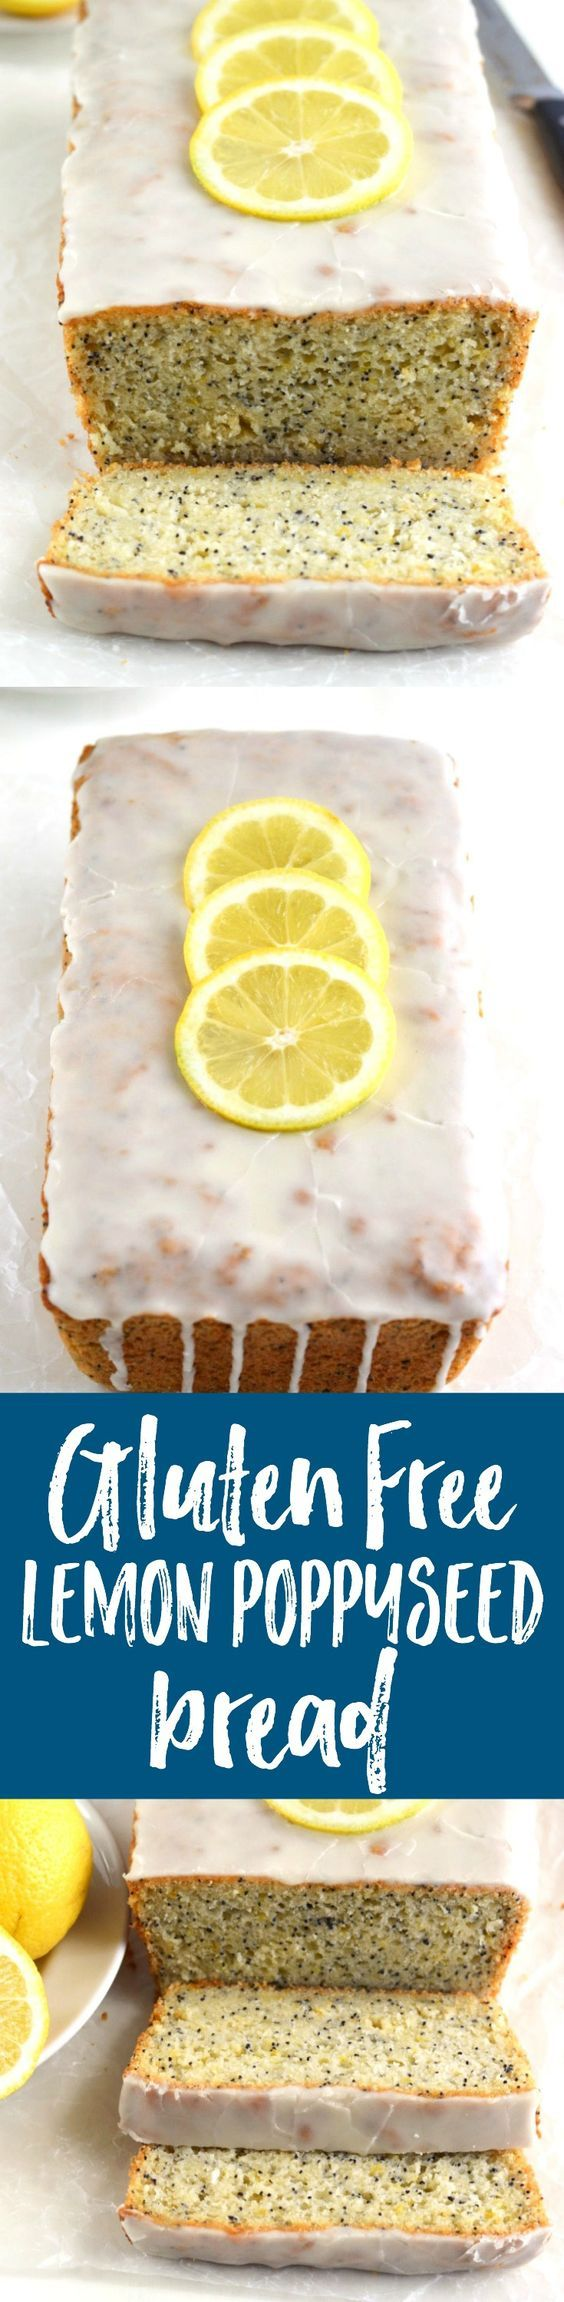 1000+ images about Gluten Free on Pinterest | Zucchini ...